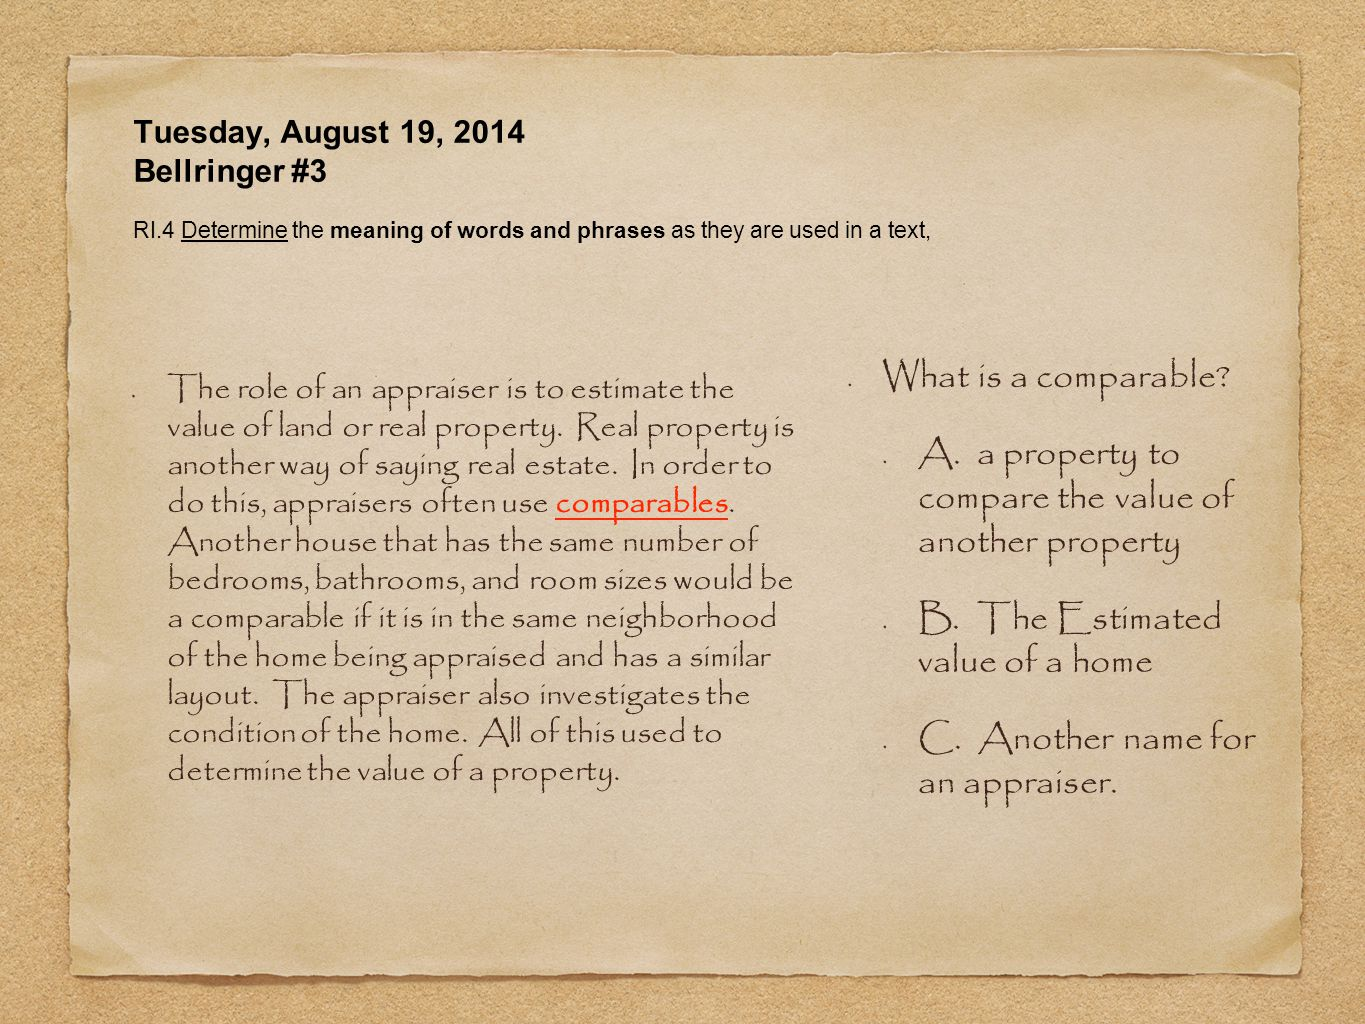 Tuesday, August 19, 2014 Bellringer #3 RI.4 Determine the meaning of words and phrases as they are used in a text, The role of an appraiser is to estimate the value of land or real property.